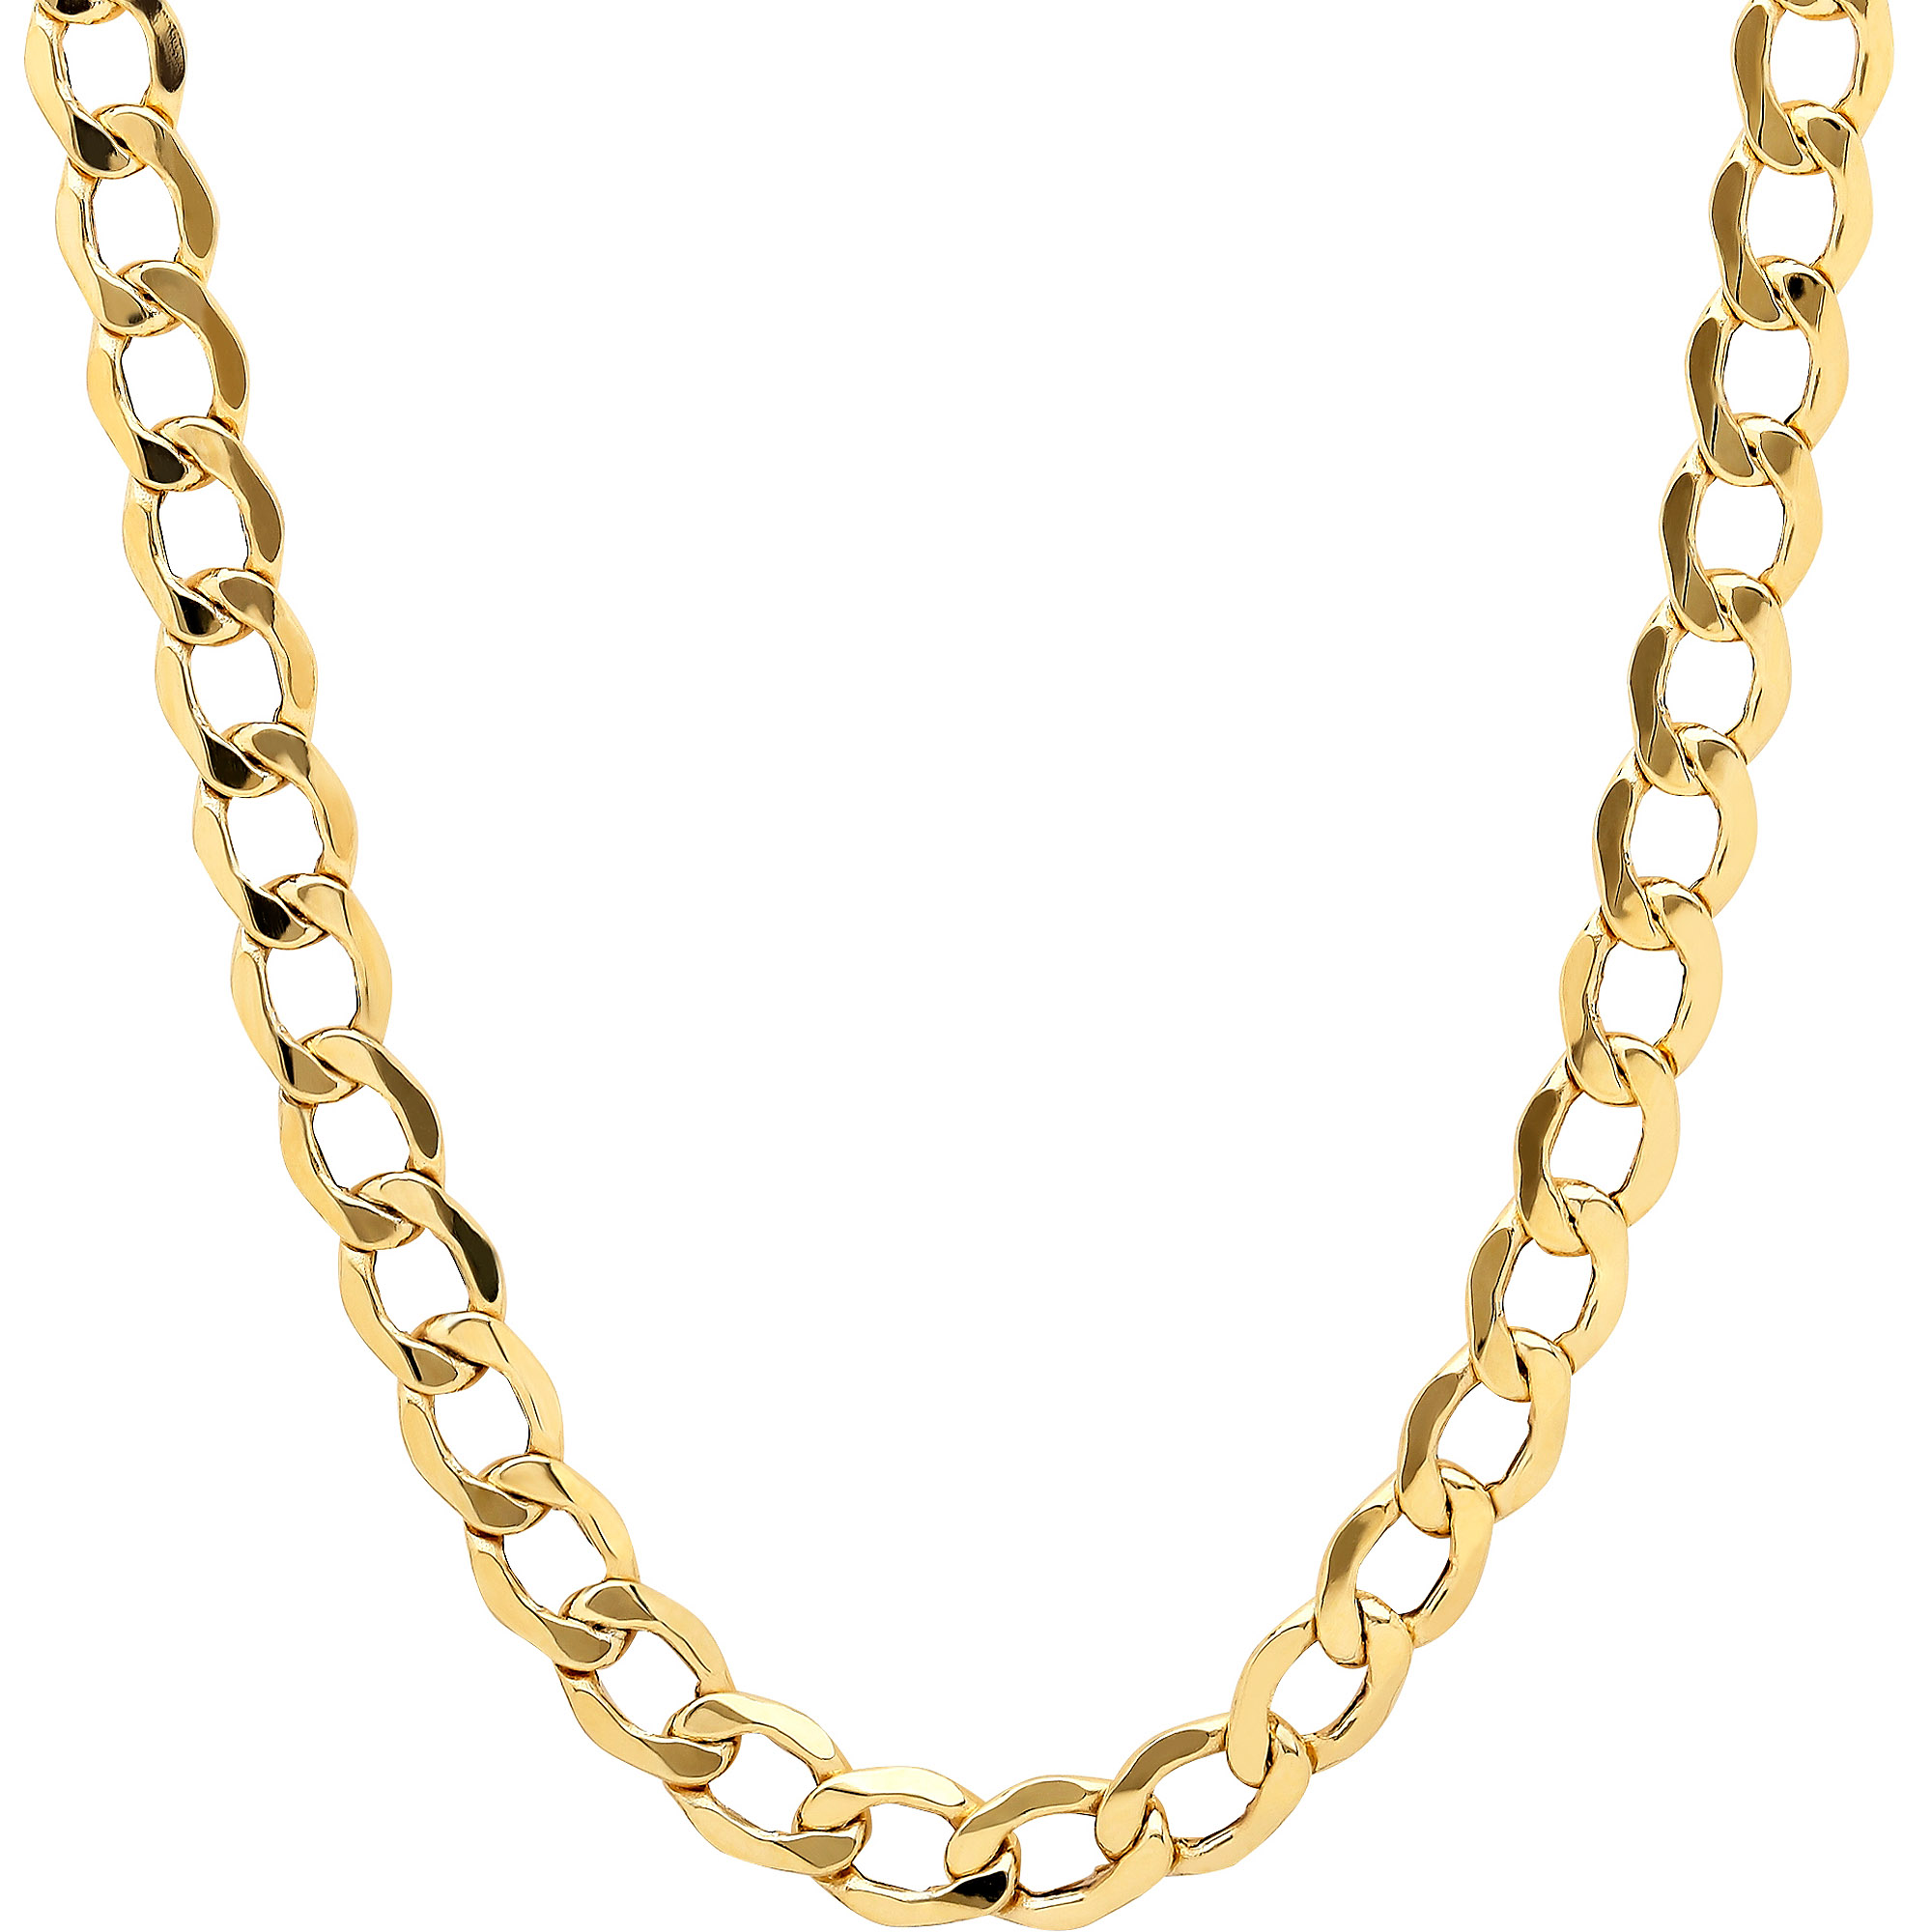 Simply Gold 10kt Yellow Gold Curb Chain